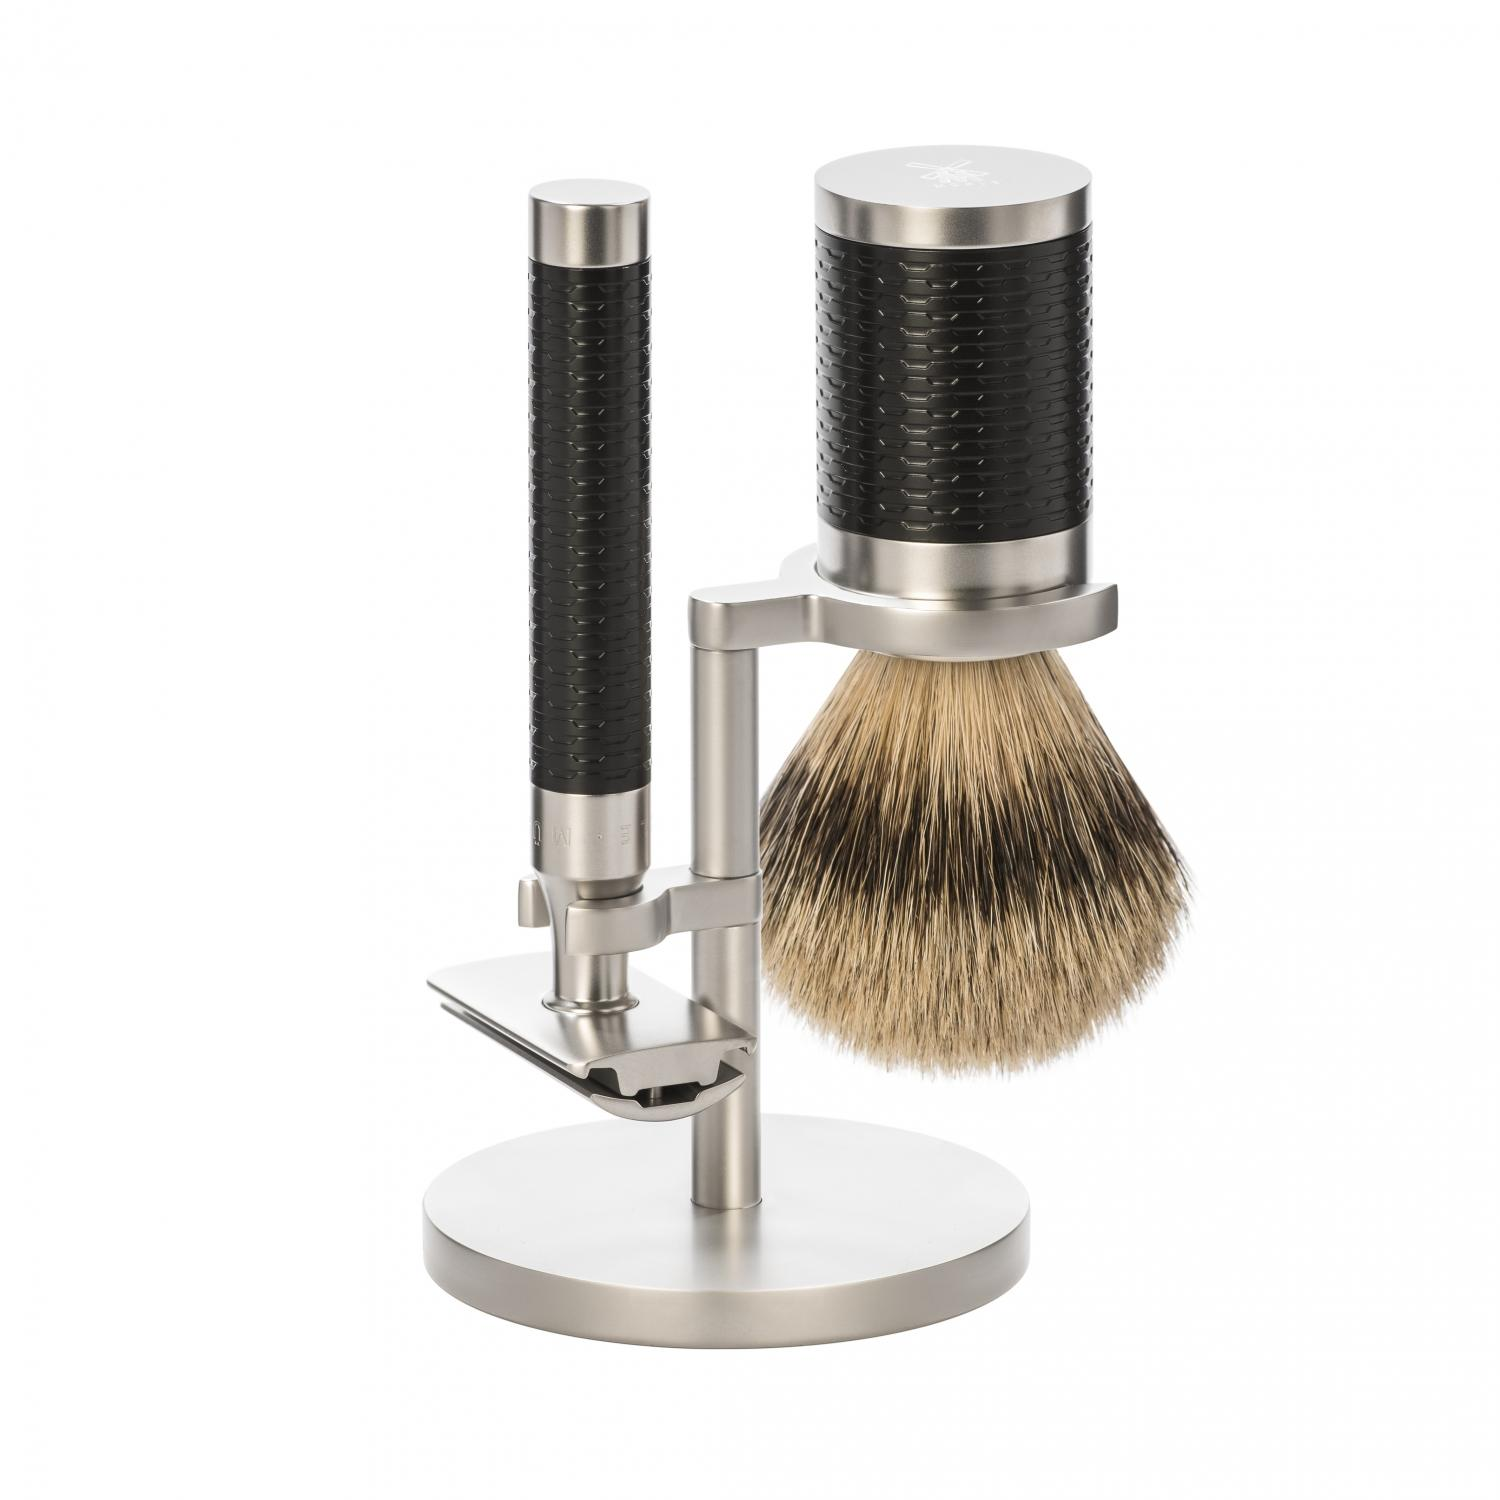 Shaving set from MÜHLE, silvertip badger, handle material stainless steel/black.